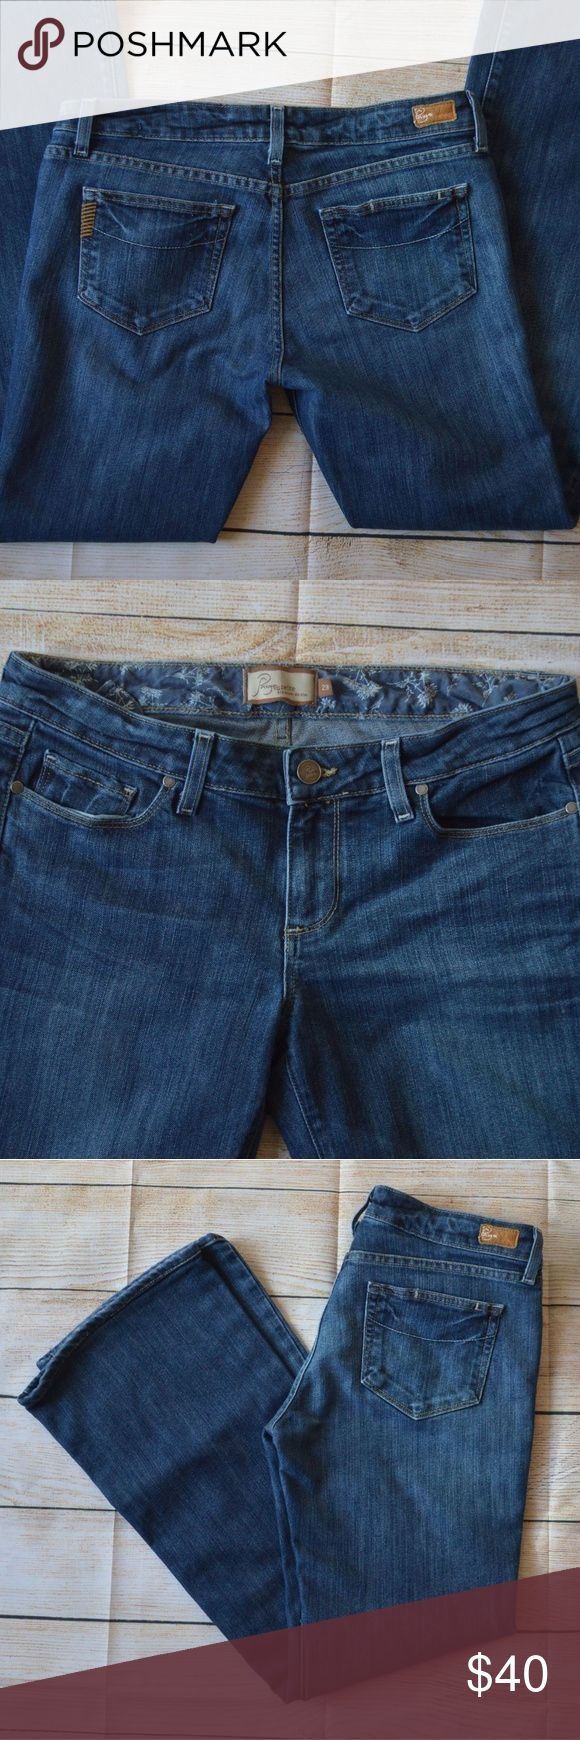 """Paige Premium Denim Hollywood Hills Petite Bootcut Paige Premium Denim classic bootcut size 29. Altered hem. Great condition. Measurements (taken with item laid flat across side to side) Waistband 15"""" Hips 19"""" Rise 8"""" Inseam 29 1/2"""" Leg opening 9 1/2""""  From a smoke-free home PAIGE Jeans Boot Cut"""